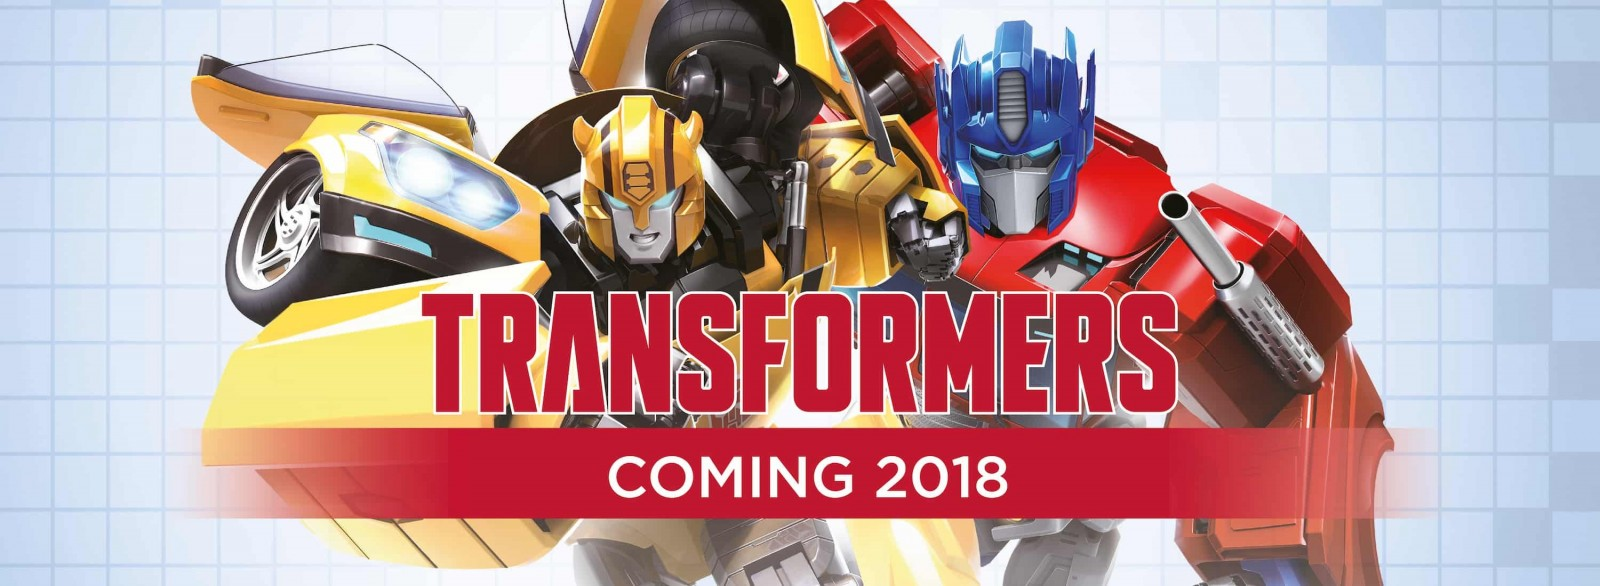 Transformers News: Officially Licensed Transformers Products Thread